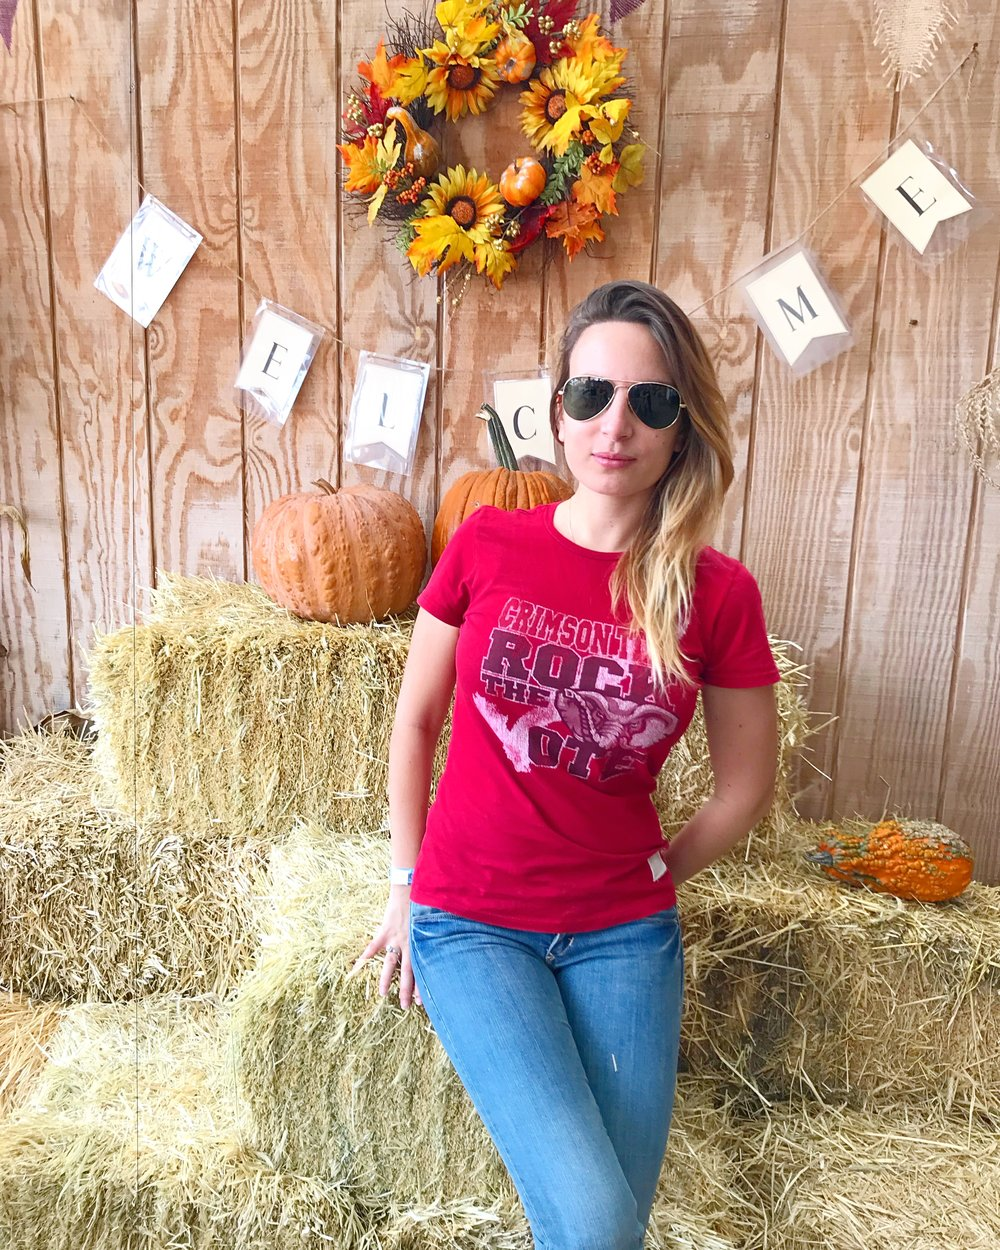 A day in a Farm, Fishkill Farms, New York